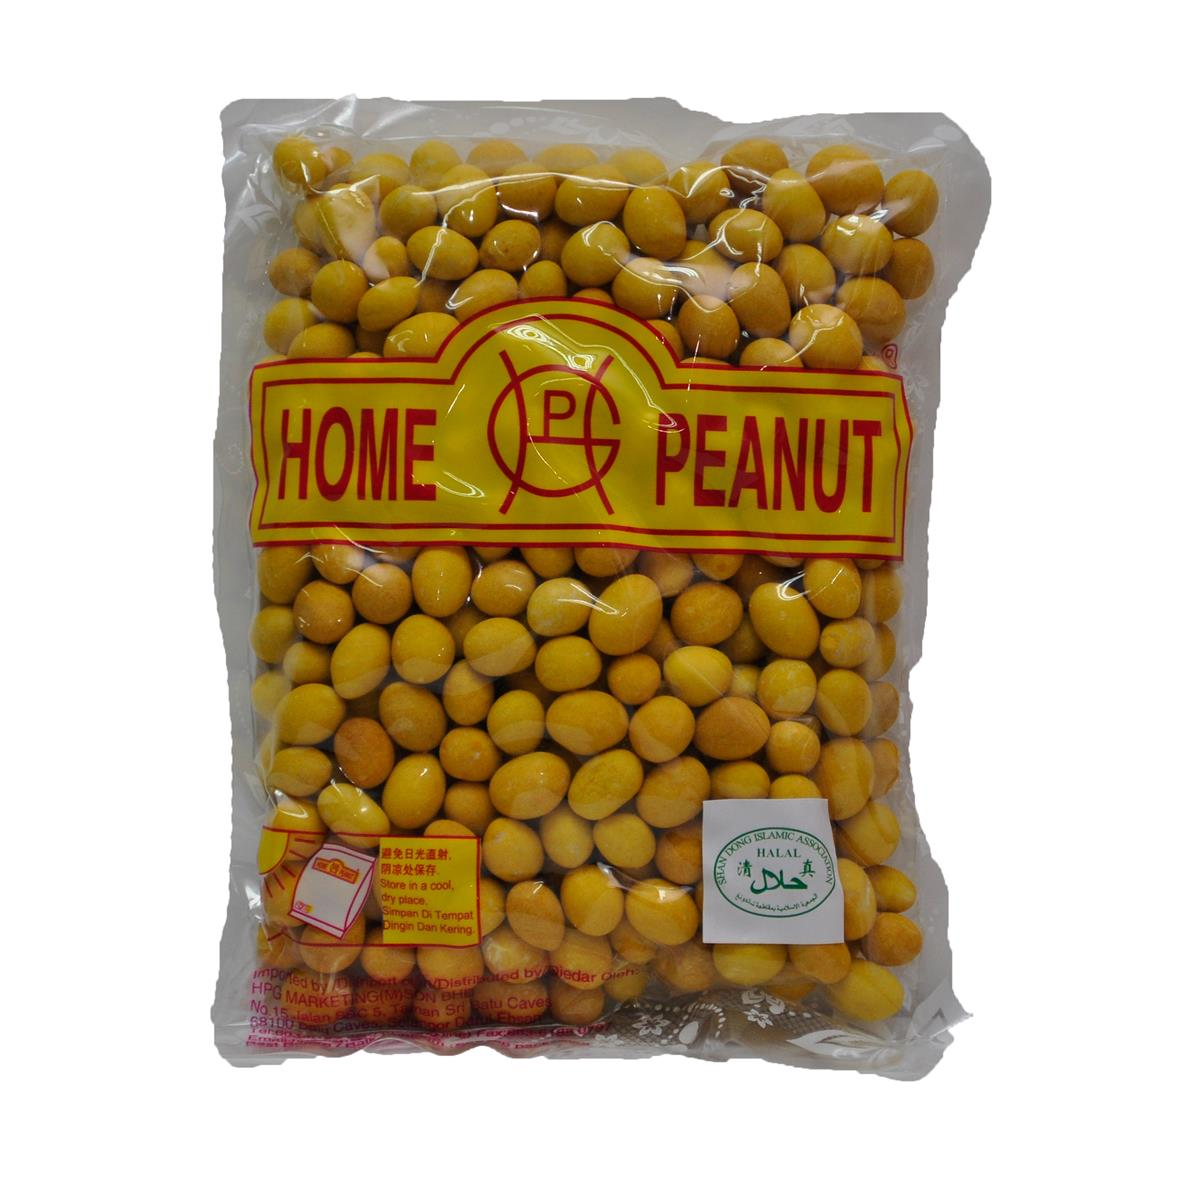 Home Peanut Garden Fruit Nut 350g